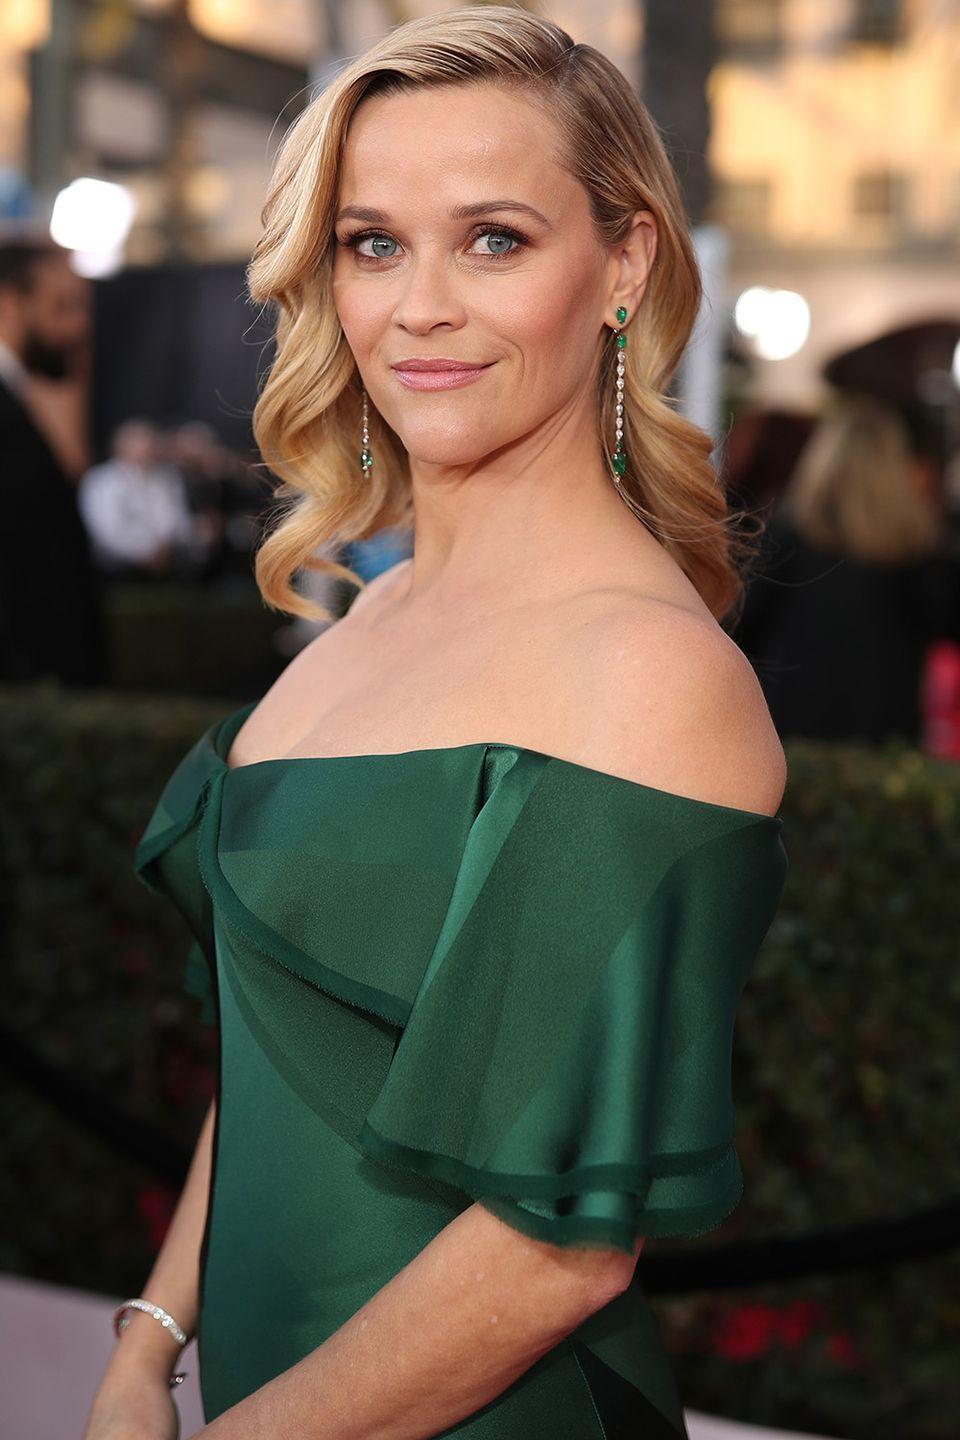 """<p><strong>Born</strong>: Laura Jeanne Reese Witherspoon</p><p>Early in <a href=""""https://www.vogue.com.au/celebrity/news/to-whom-it-may-concern-the-real-names-of-your-favourite-designers-celebrities-and-models/image-gallery/d39ada4da1dbc8d79f84209f95ea897b?pos=2"""" rel=""""nofollow noopener"""" target=""""_blank"""" data-ylk=""""slk:her career"""" class=""""link rapid-noclick-resp"""">her career</a>, then-Laura Jeanne adopted her mother's maiden name as her first name.</p>"""